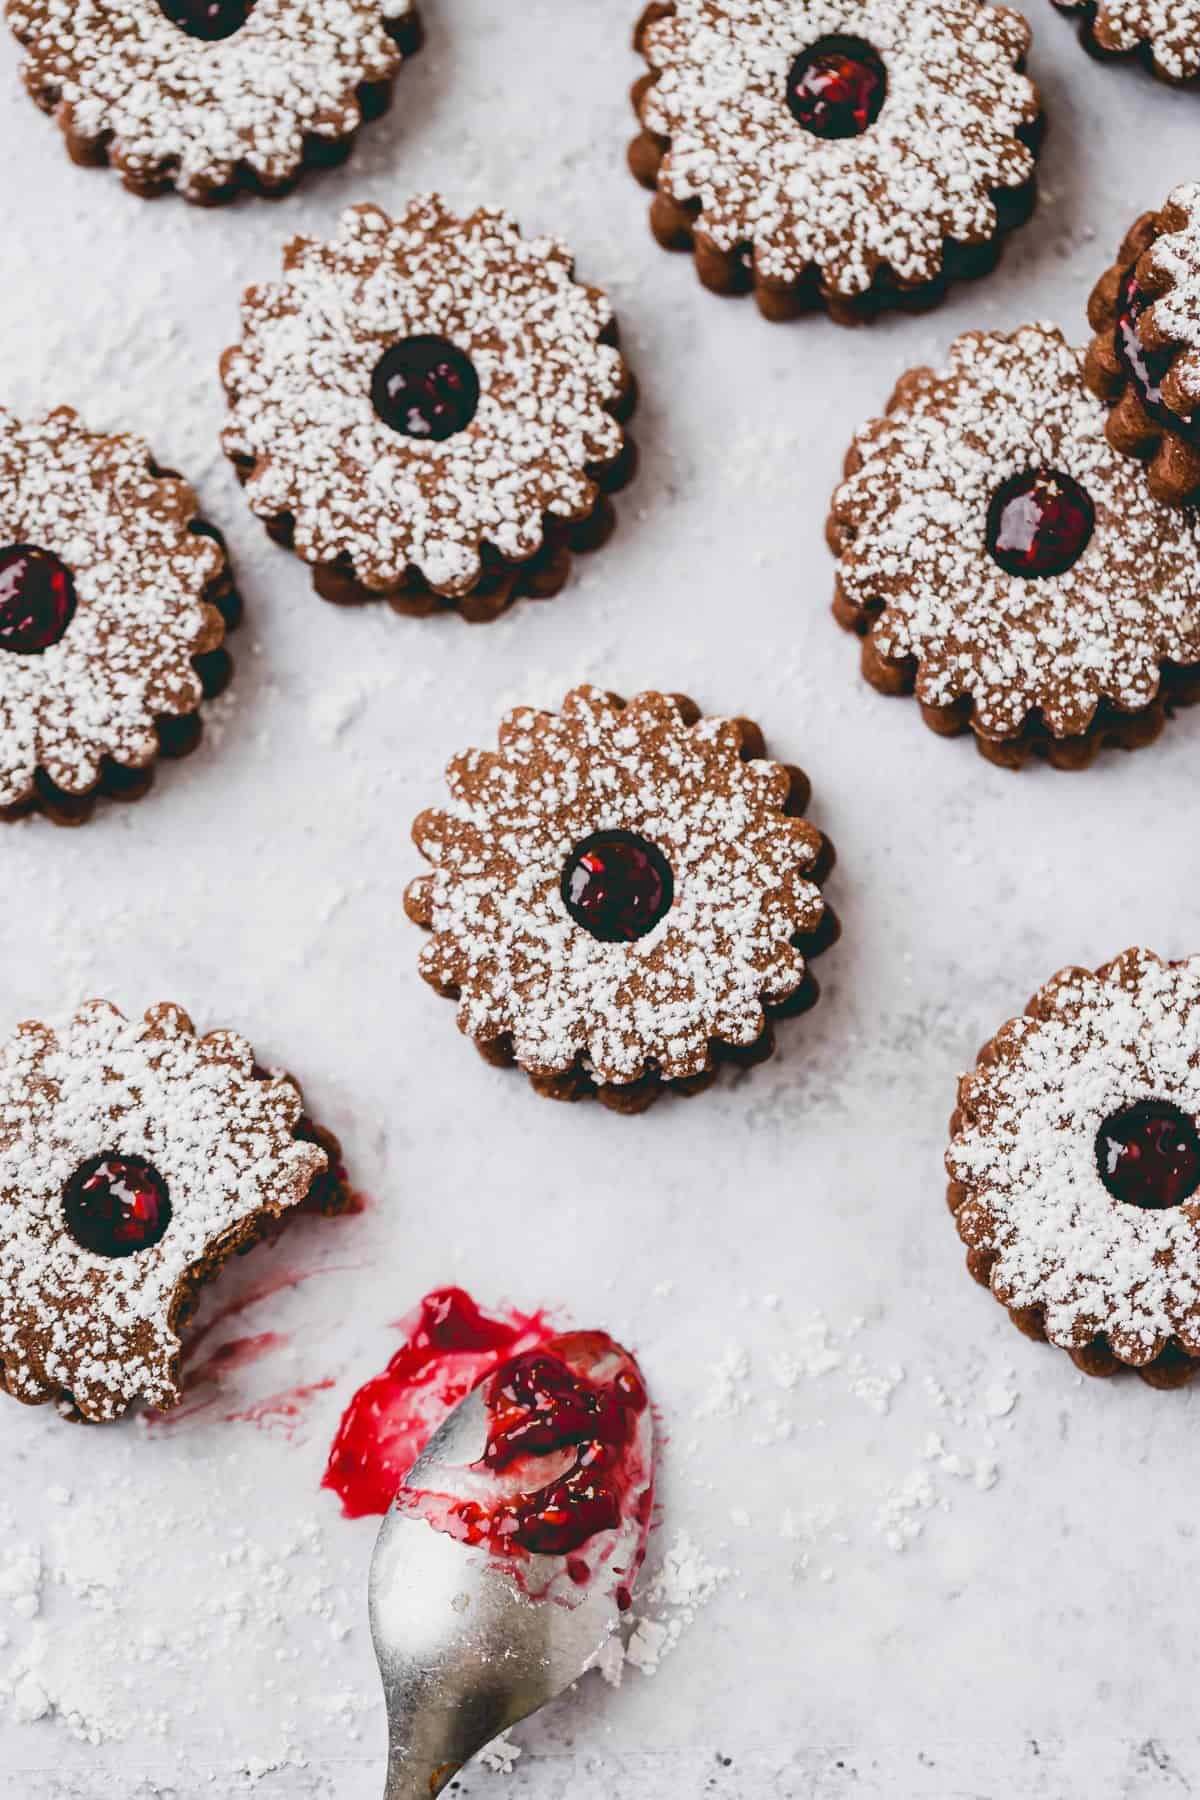 vegan linzer cookies with cacao powder and raspberry filling